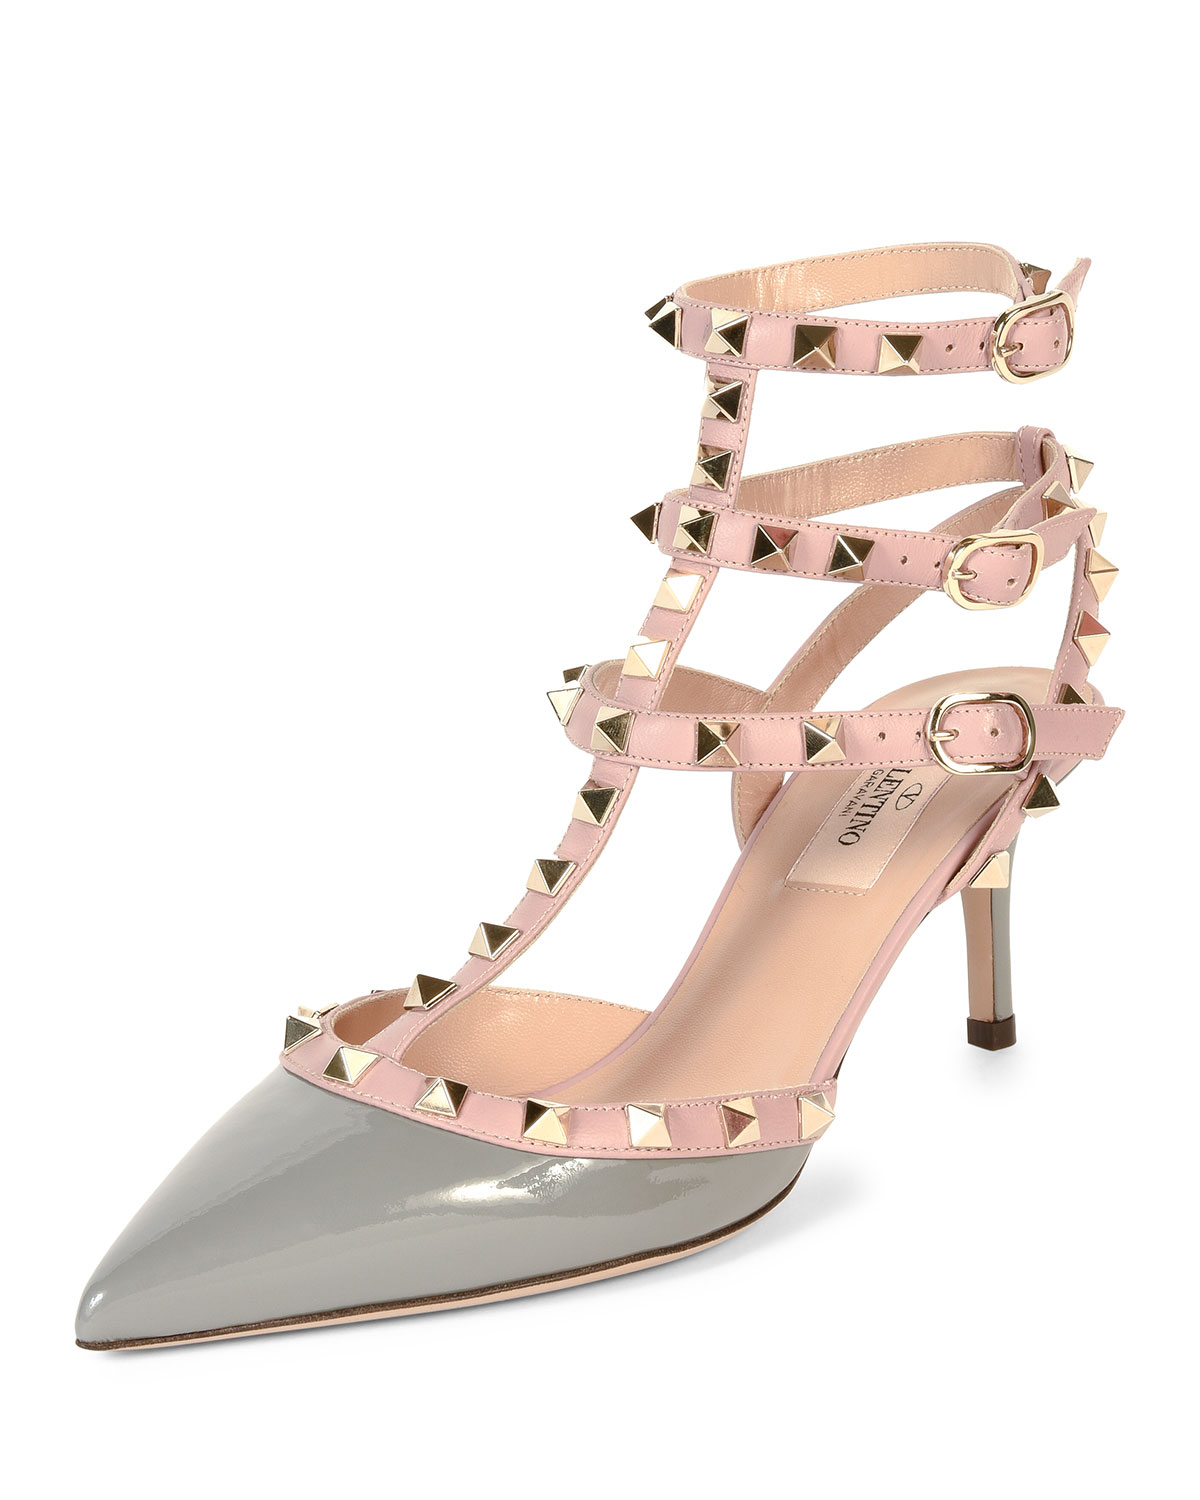 Rockstud Colorblock Leather Mid-Heel Sandal, Pebble, Size: 39B/9B - Valentino